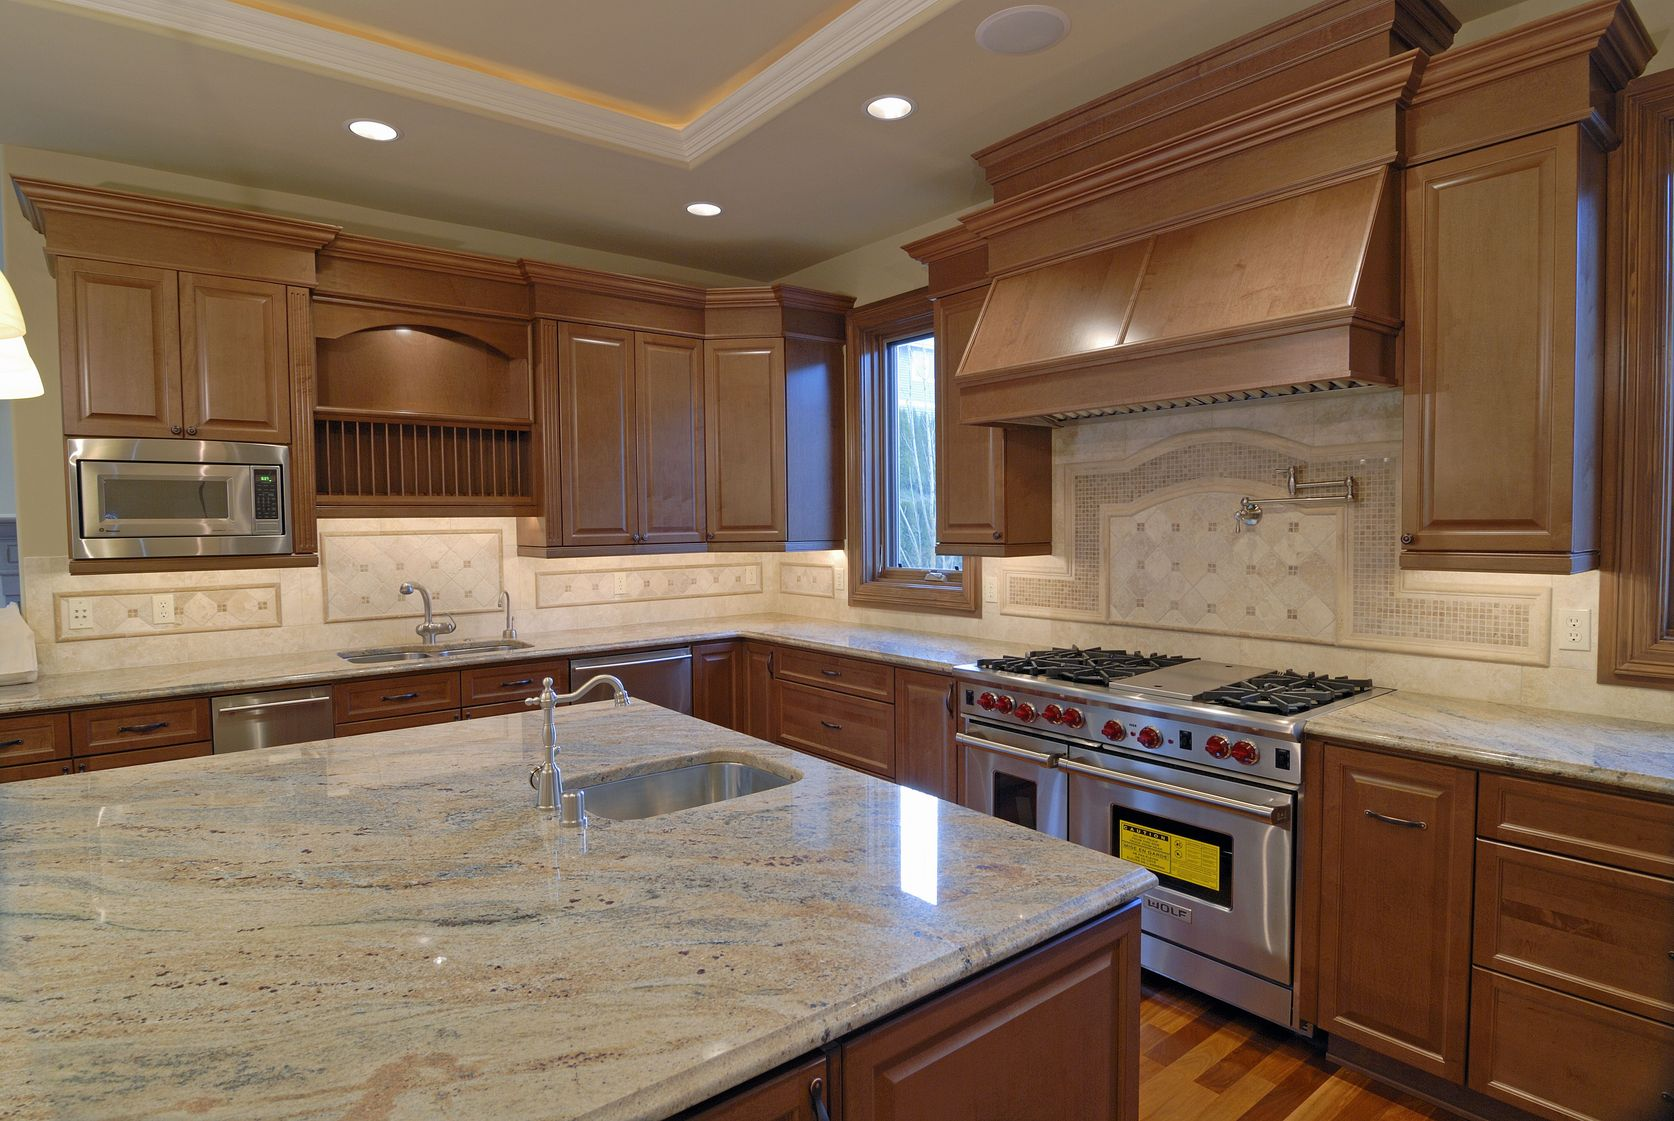 Kitchen remodeling tips how to design a kitchen with marble countertops amanzi marble granite - Granite kitchen design ...